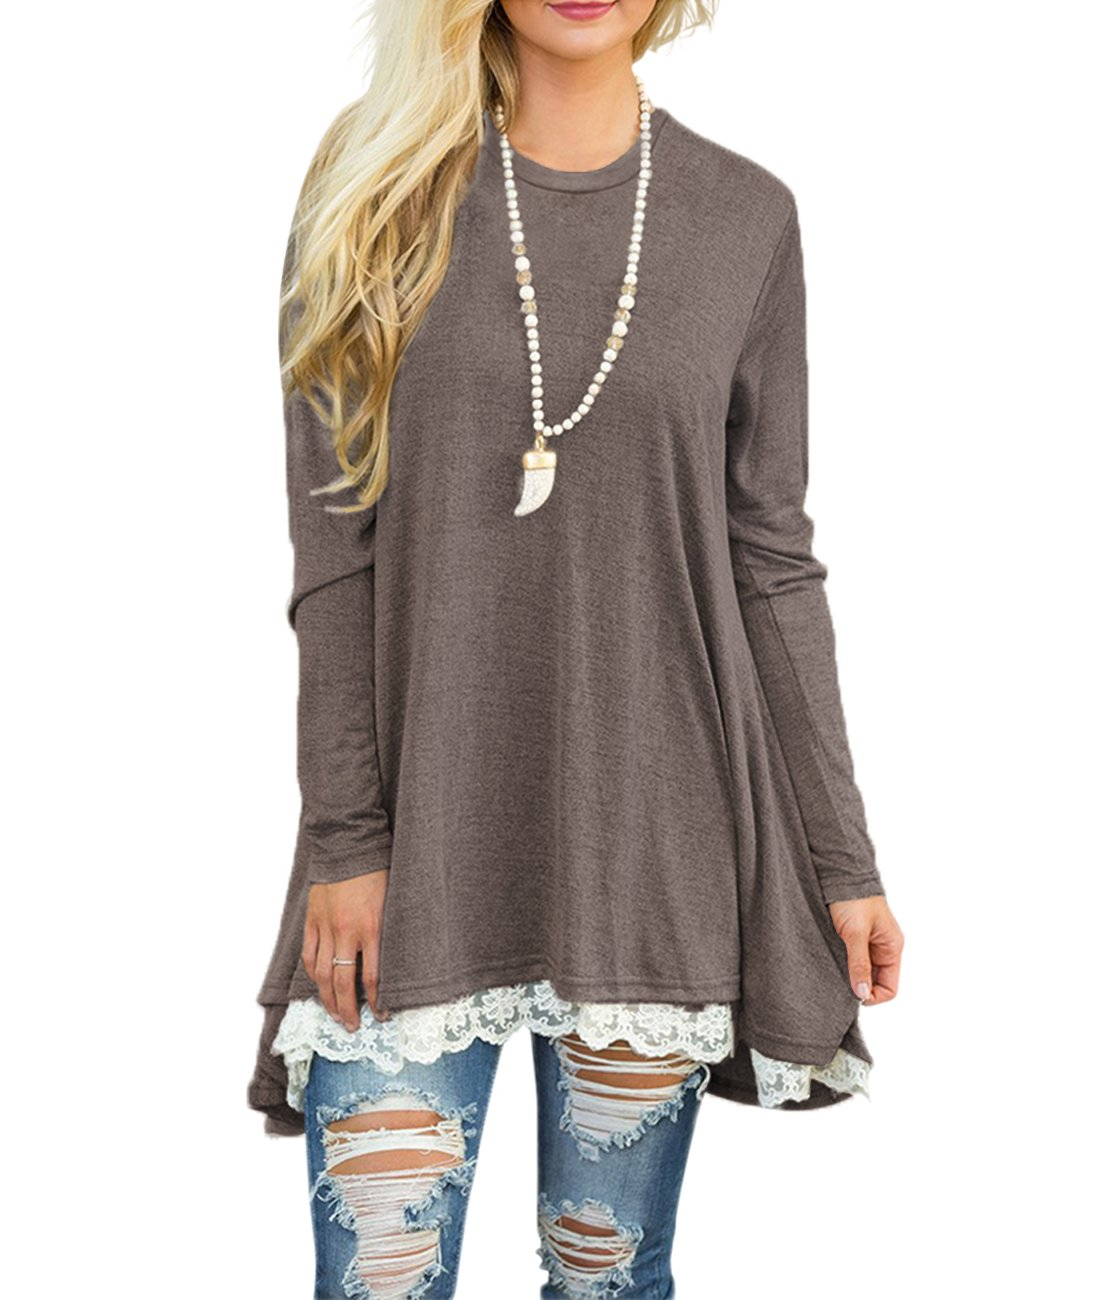 Sanifer Women Lace Long Sleeve Tunic Top Blouse (X-Large, Coffee)